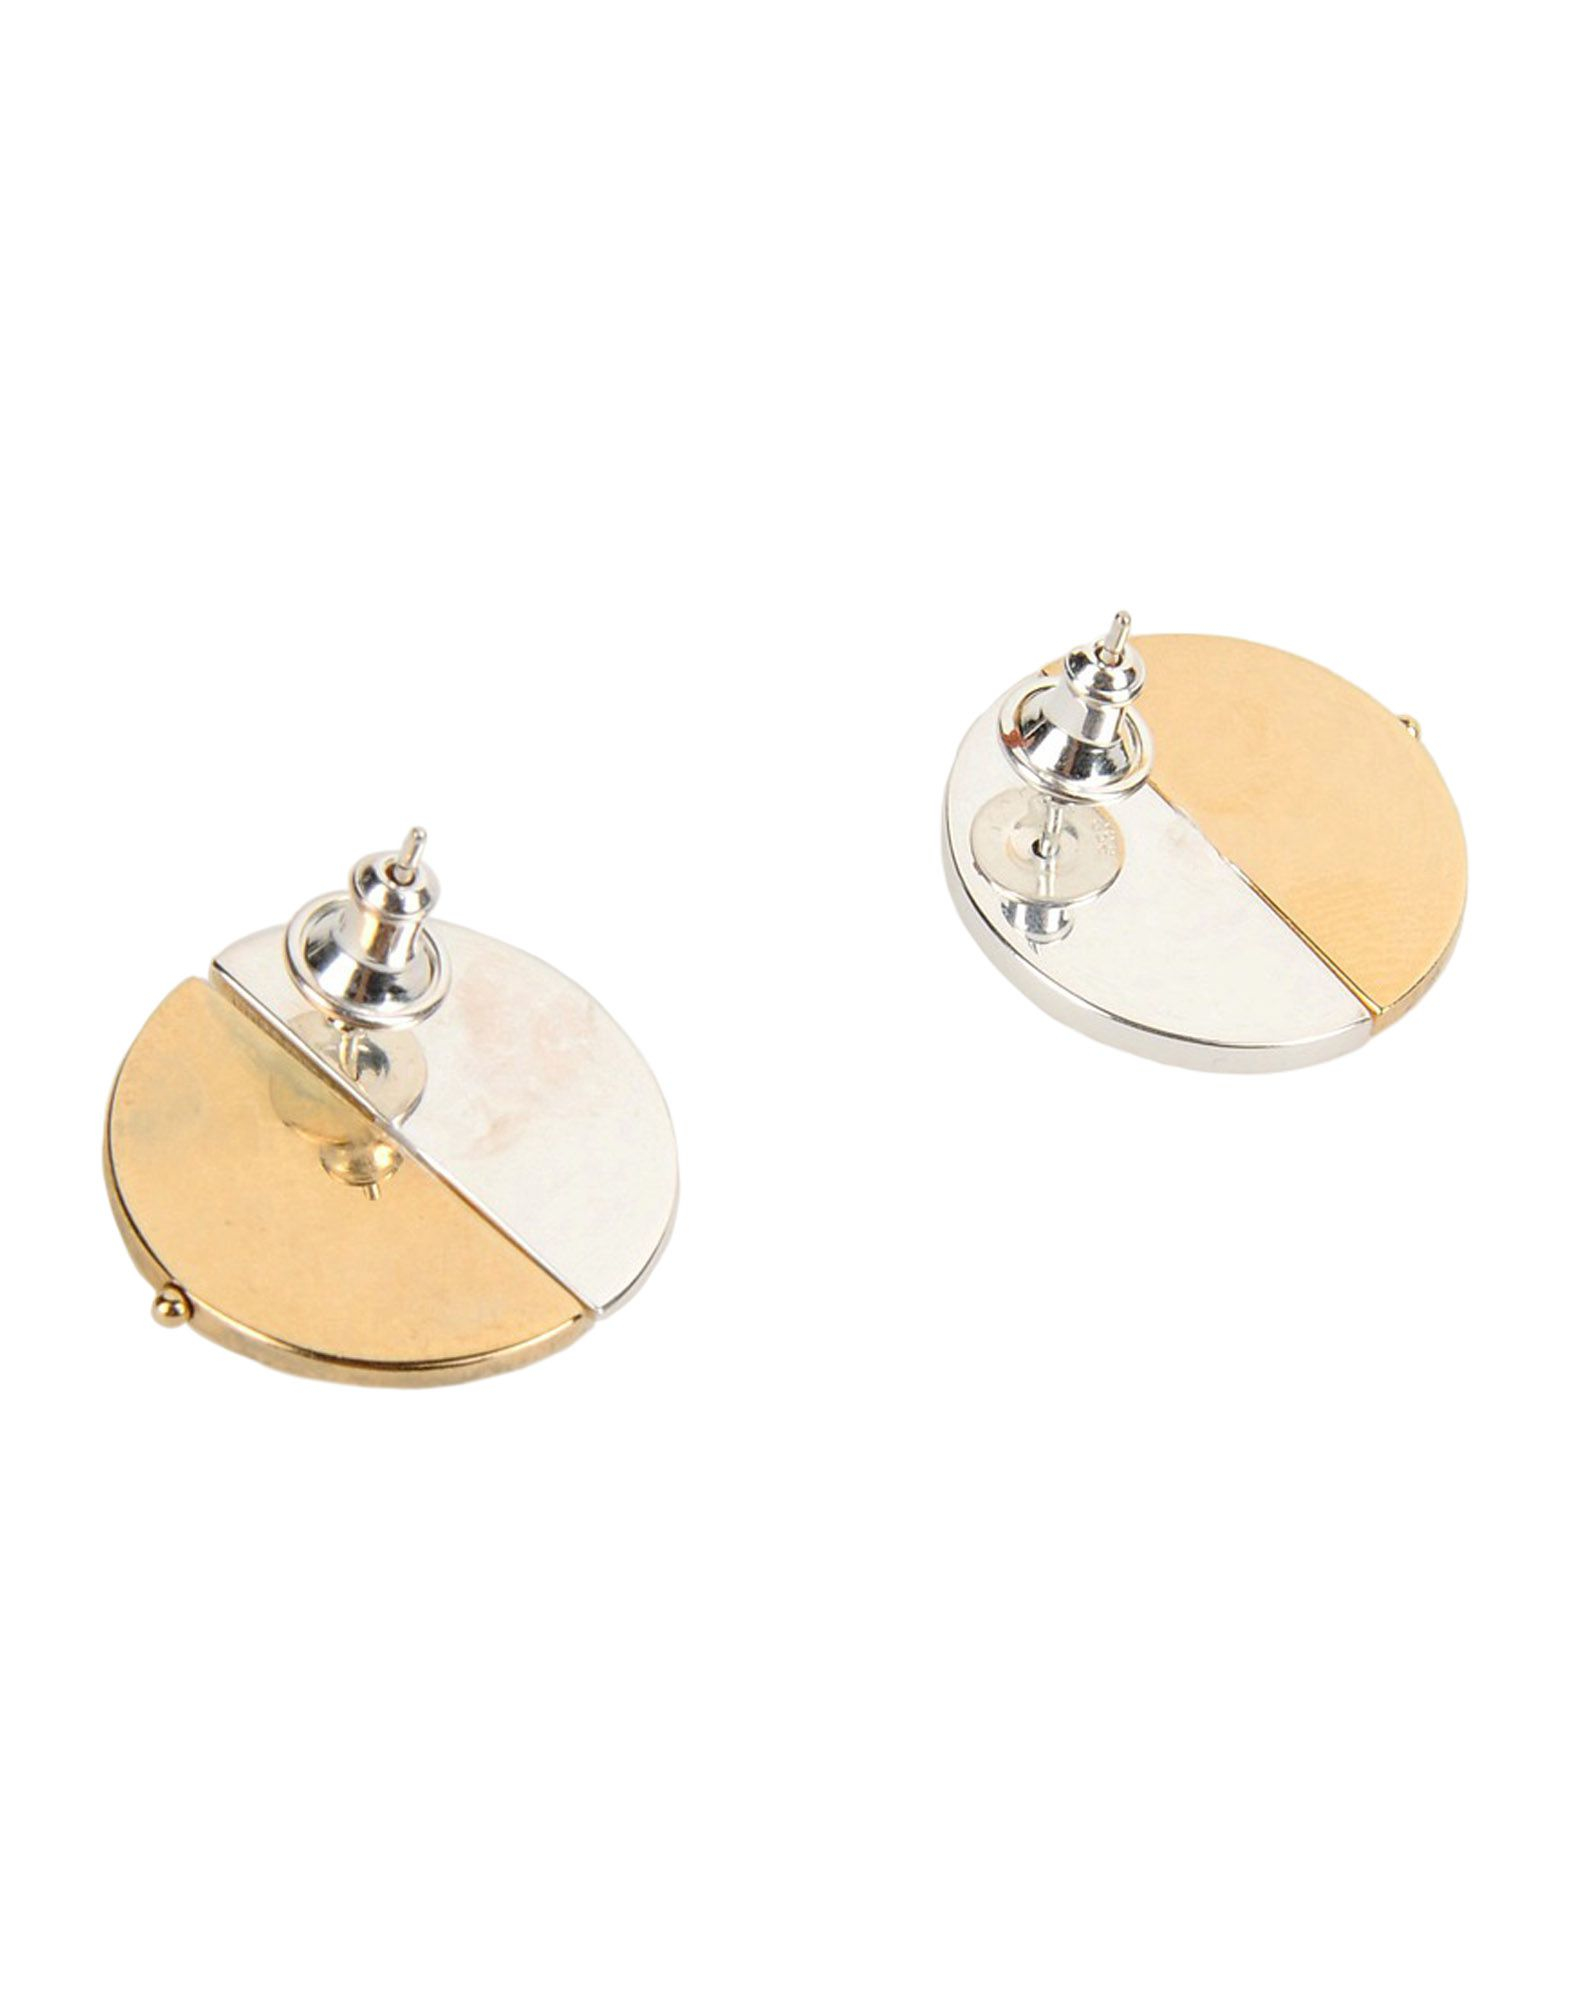 UNCOMMON MATTERS Tributary earrings - Metallic